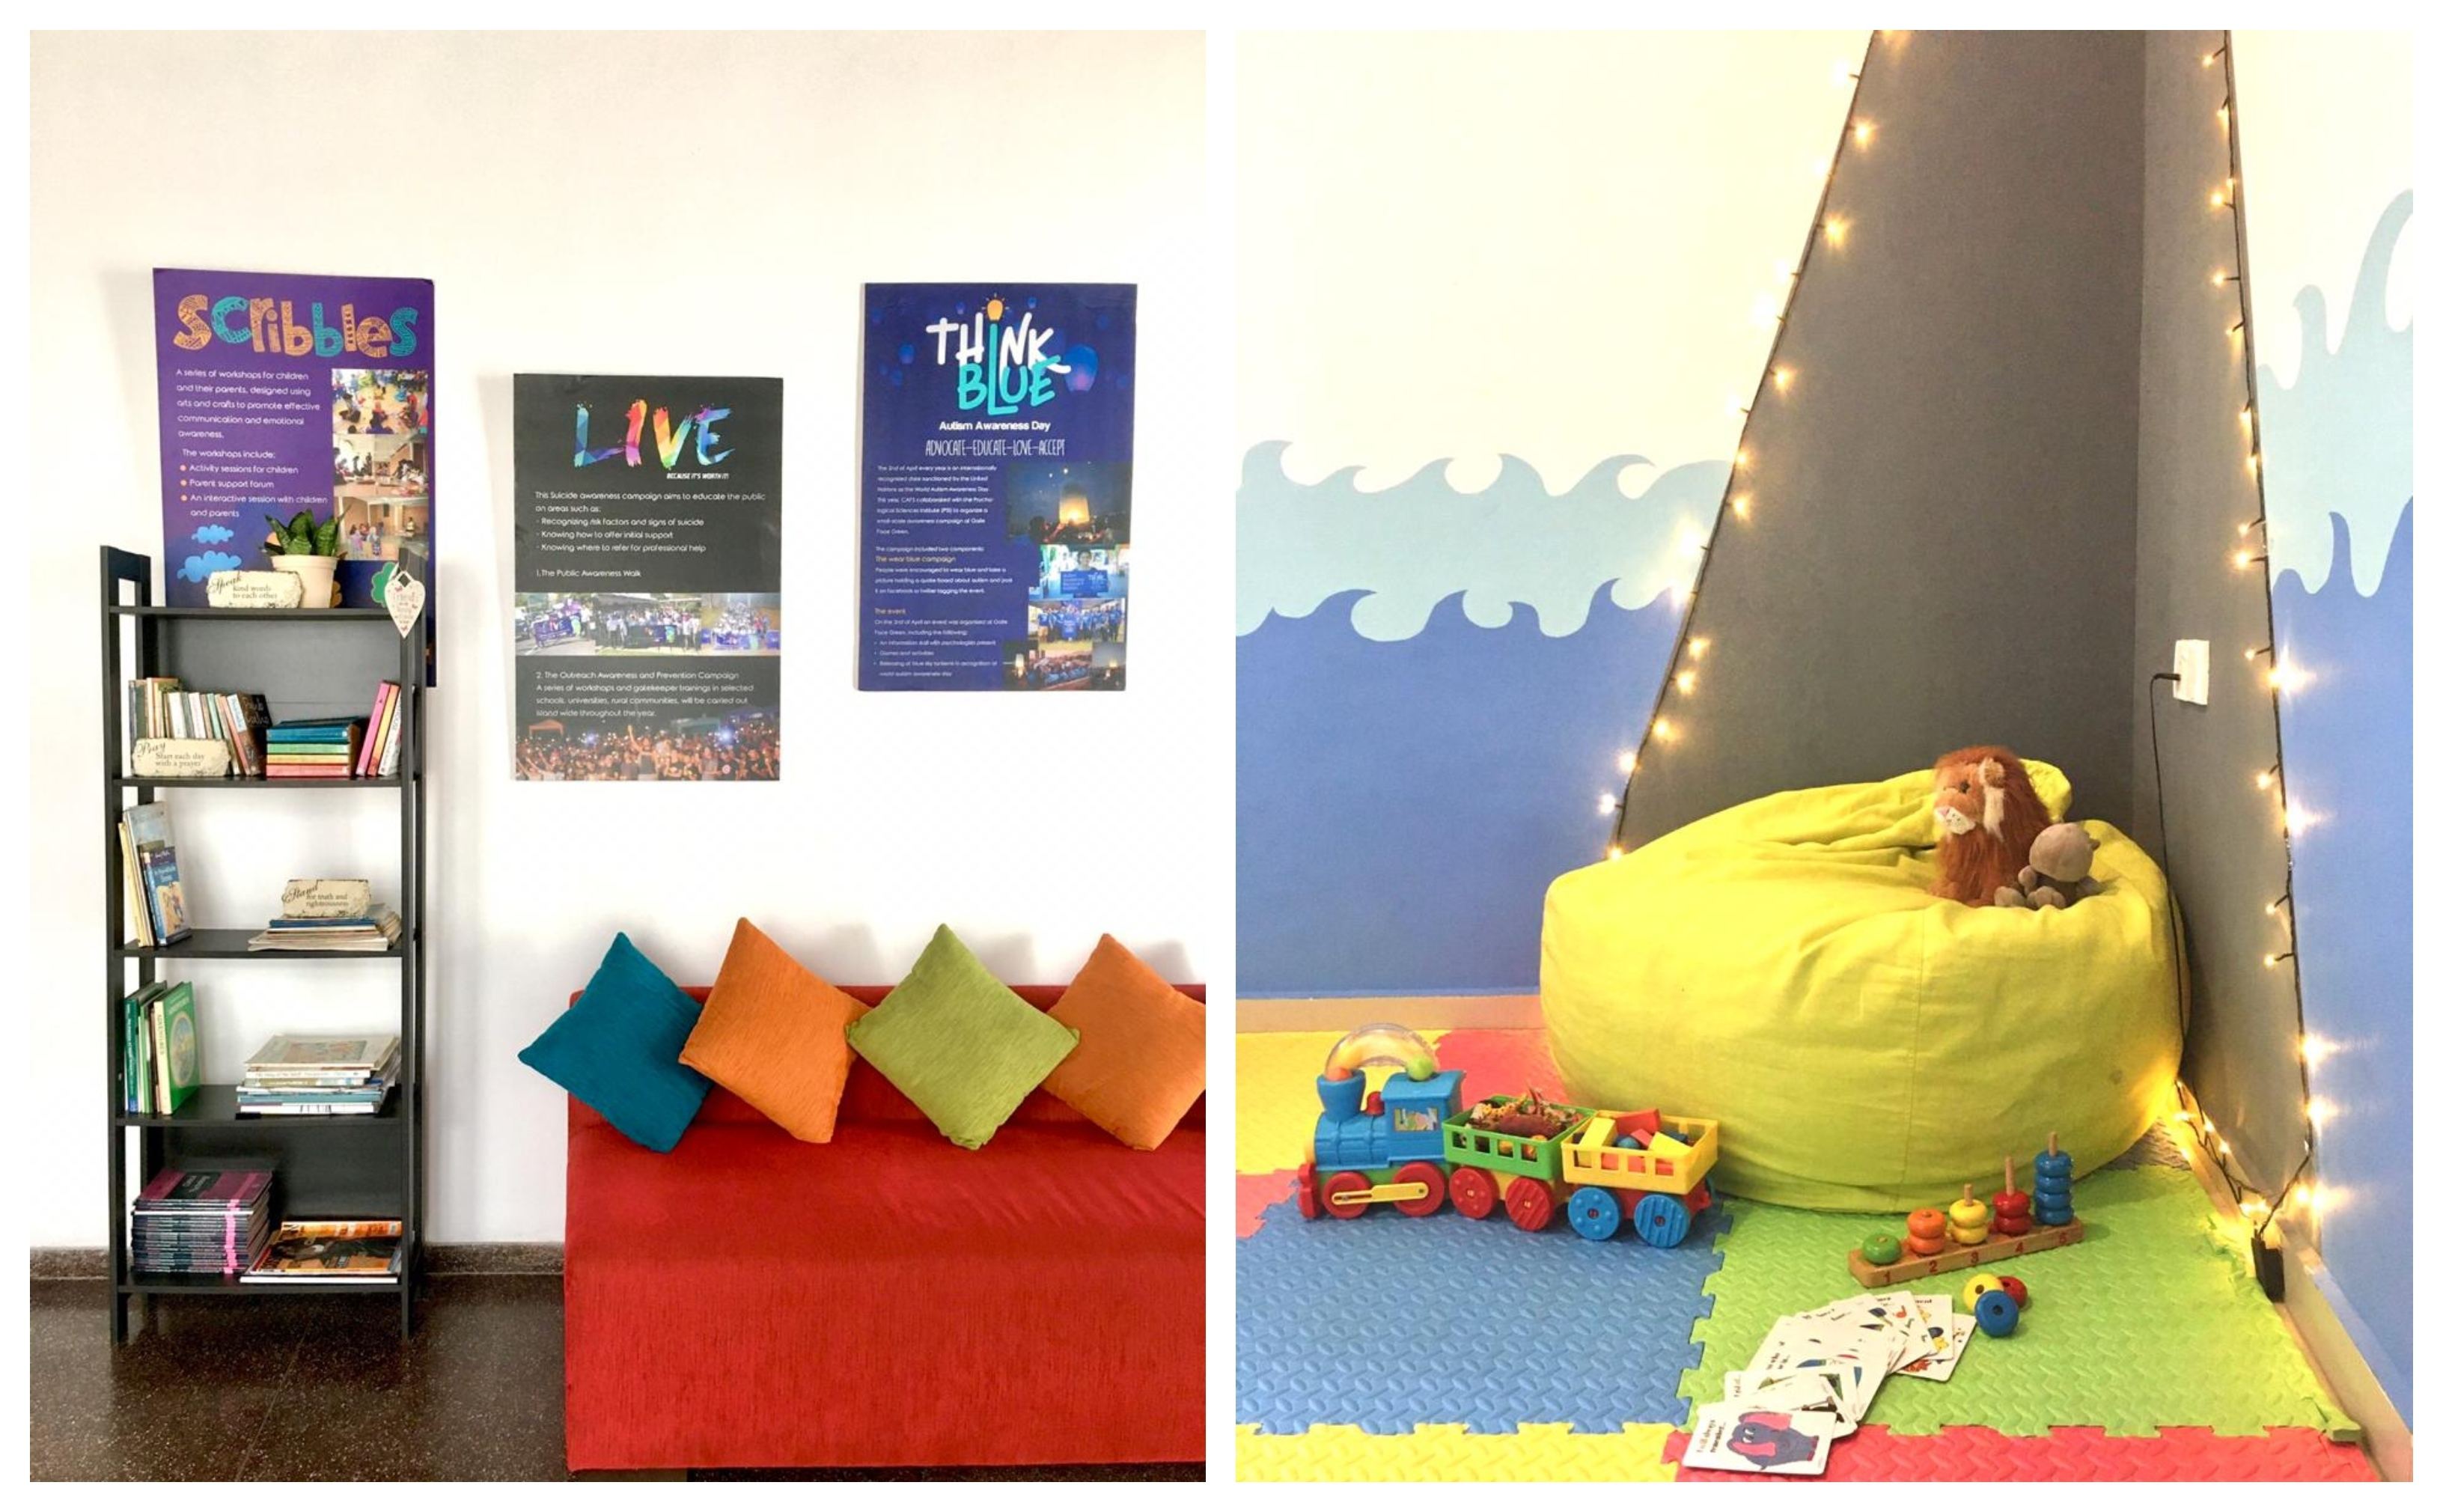 Photograph shows the interior of the CAFS space: a red sofa with colourful cushions neatly arranged on it, child-friendly posters on the wall and a book shelf with kids books and games stacked neatly on it.